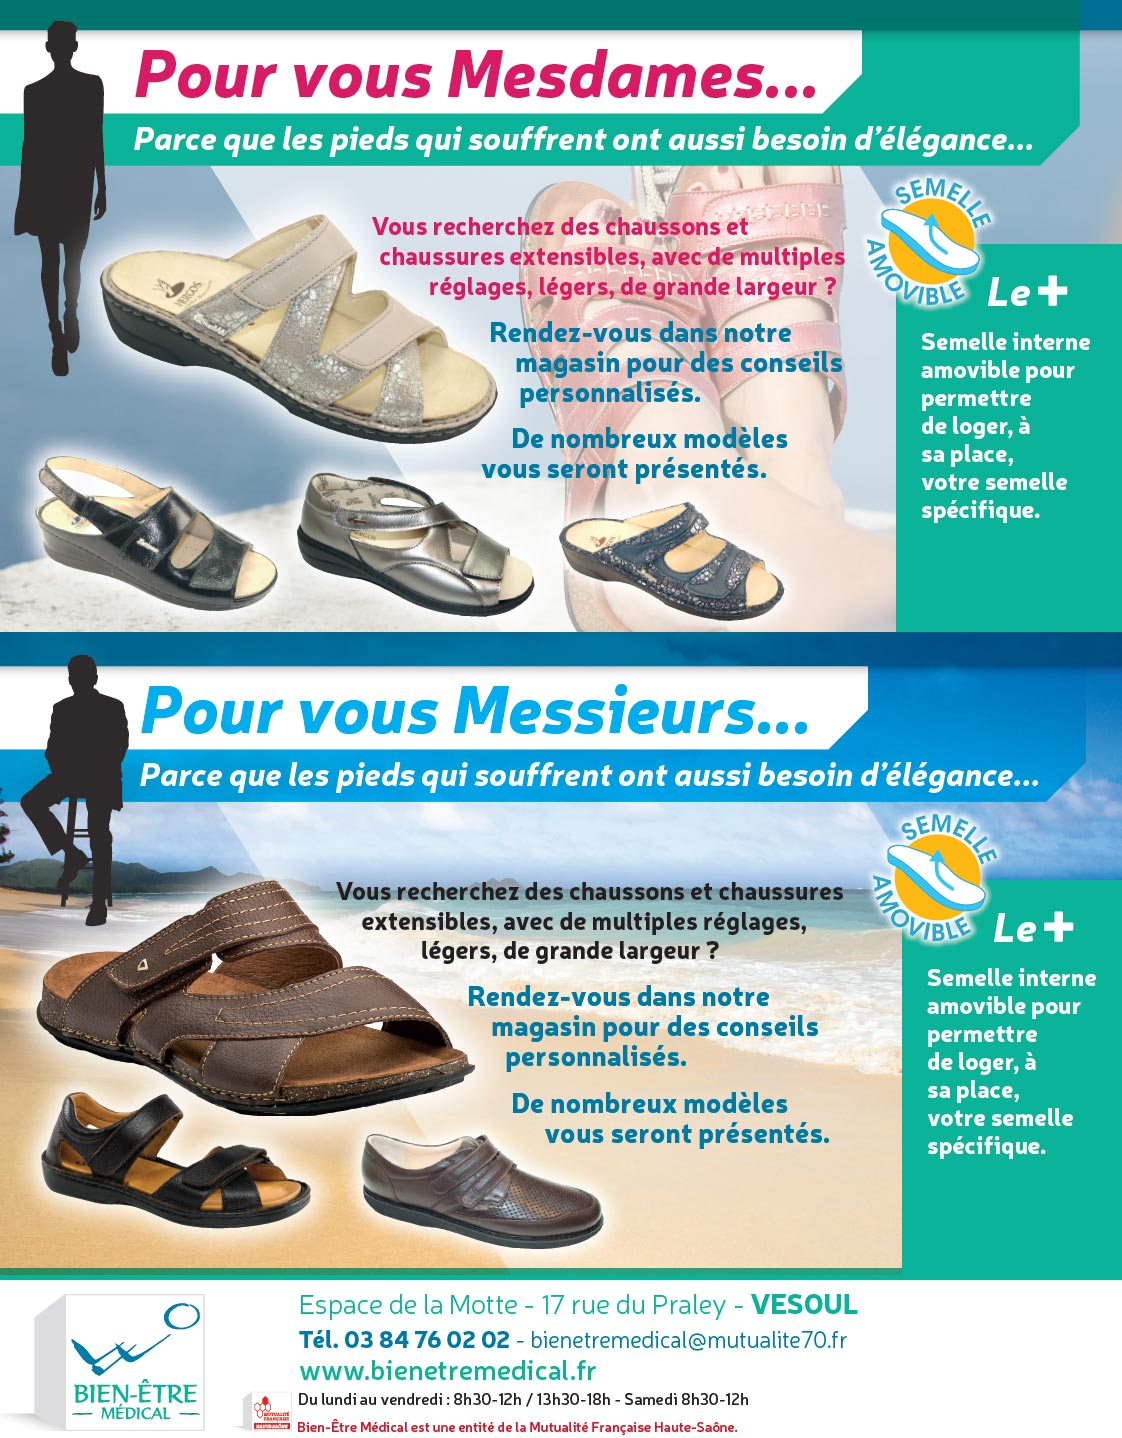 Chaussons et chaussures extensibles